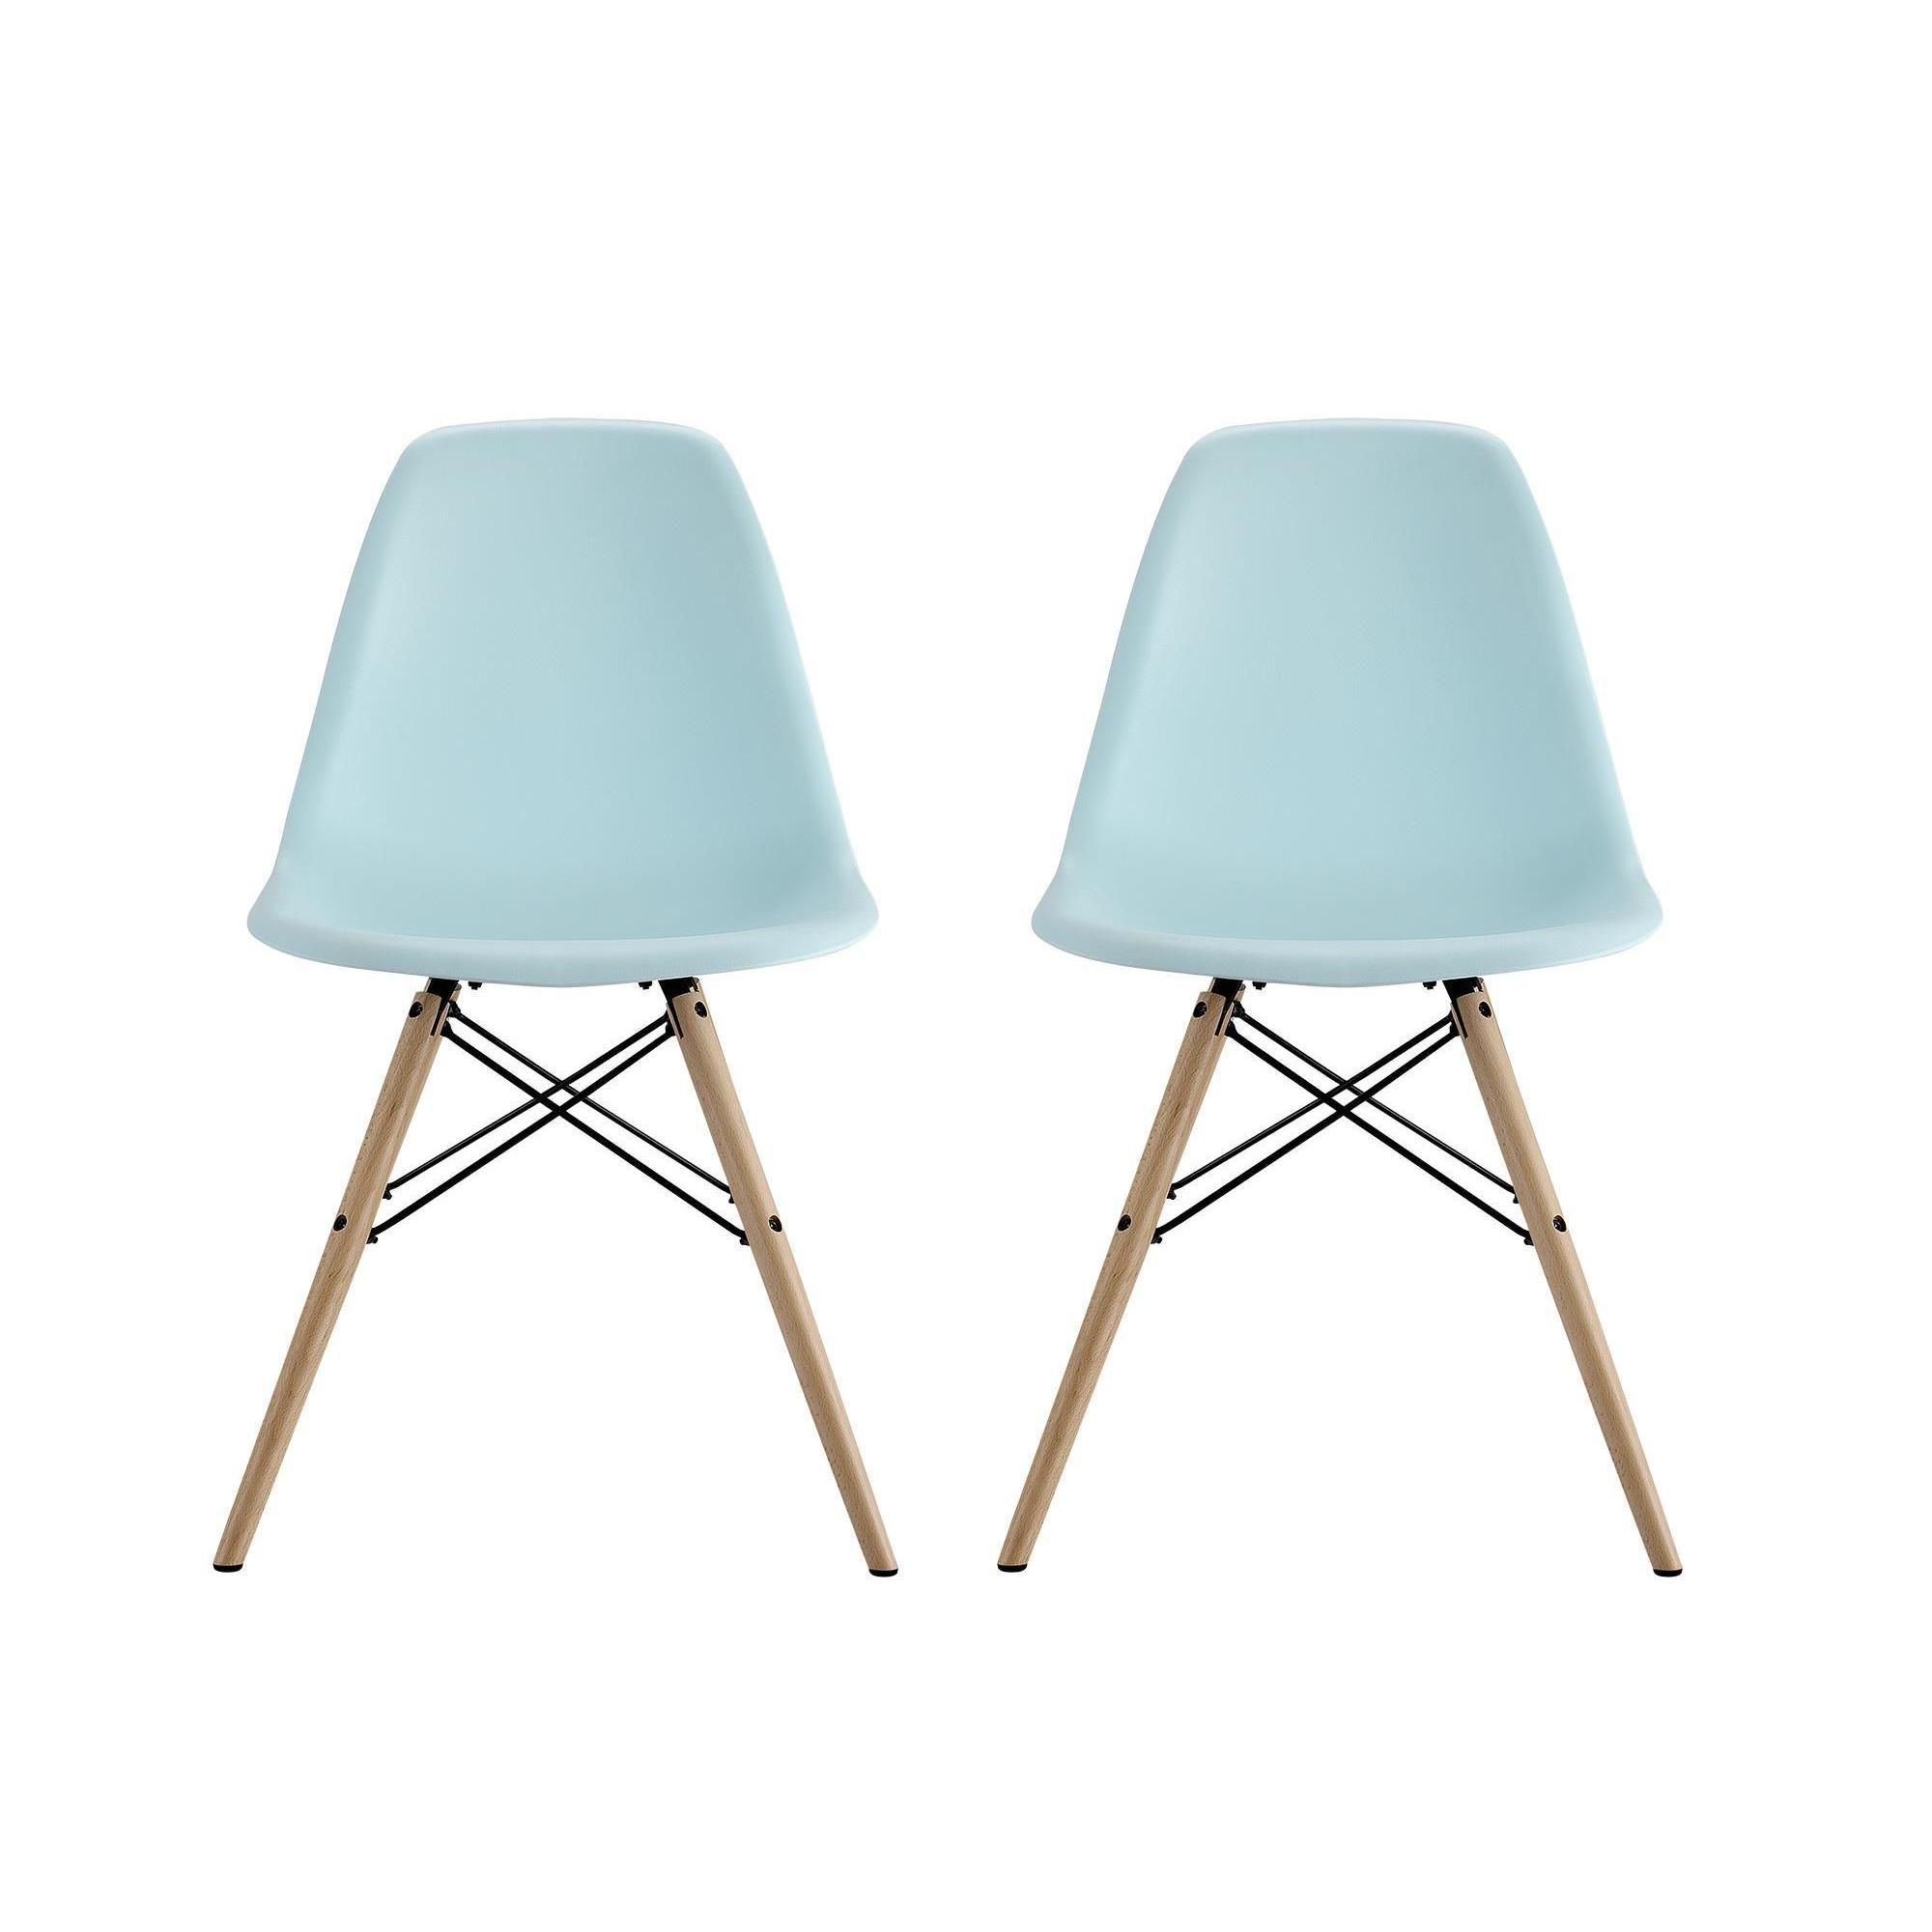 Dhp Mid Century Modern Molded Blue Chair With Wood Leg Set Of 2